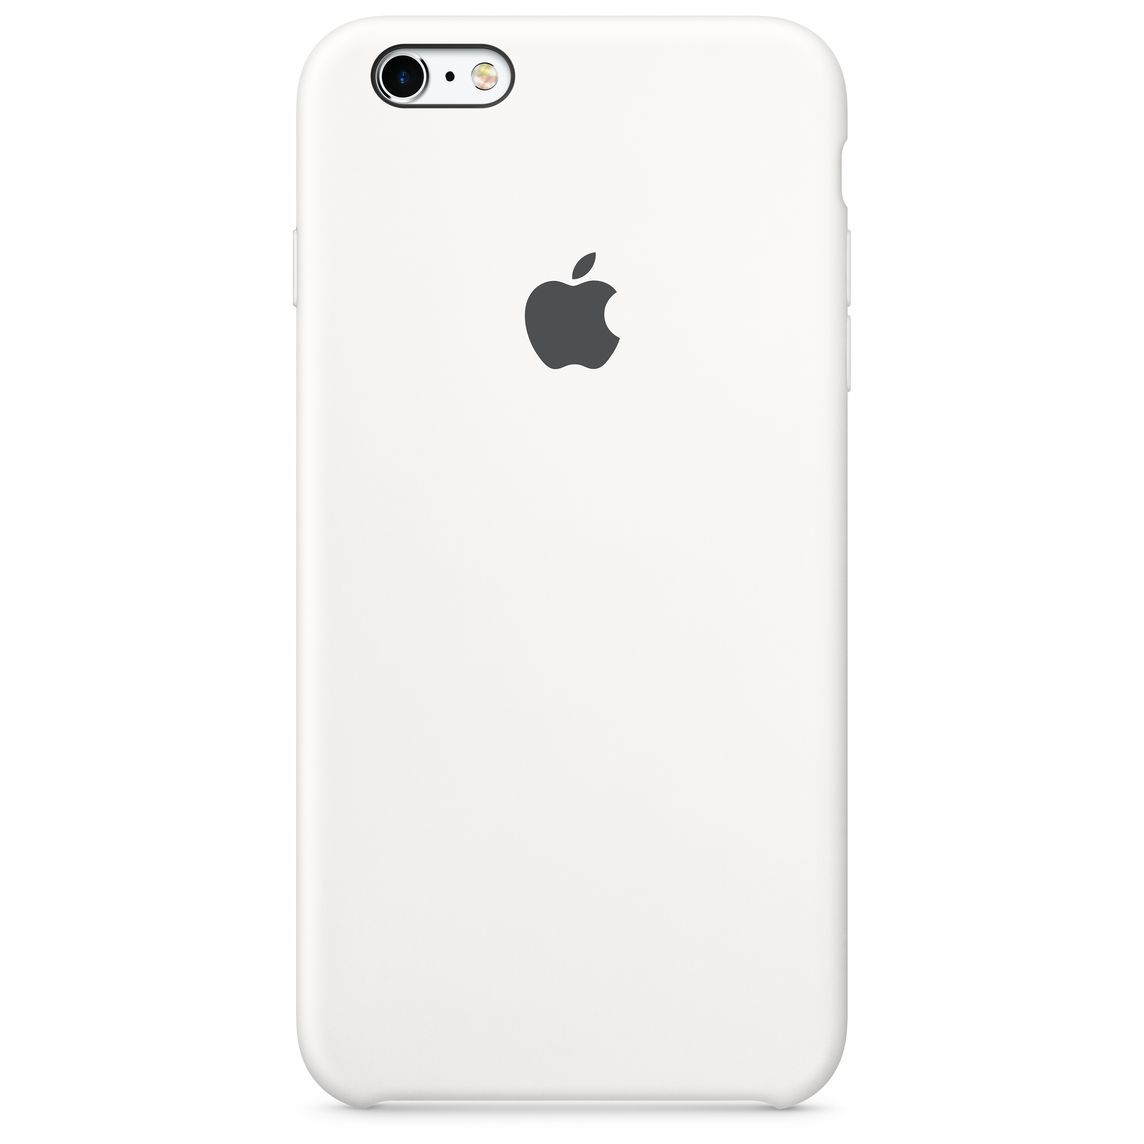 custodia iphone 6 s plus silicone